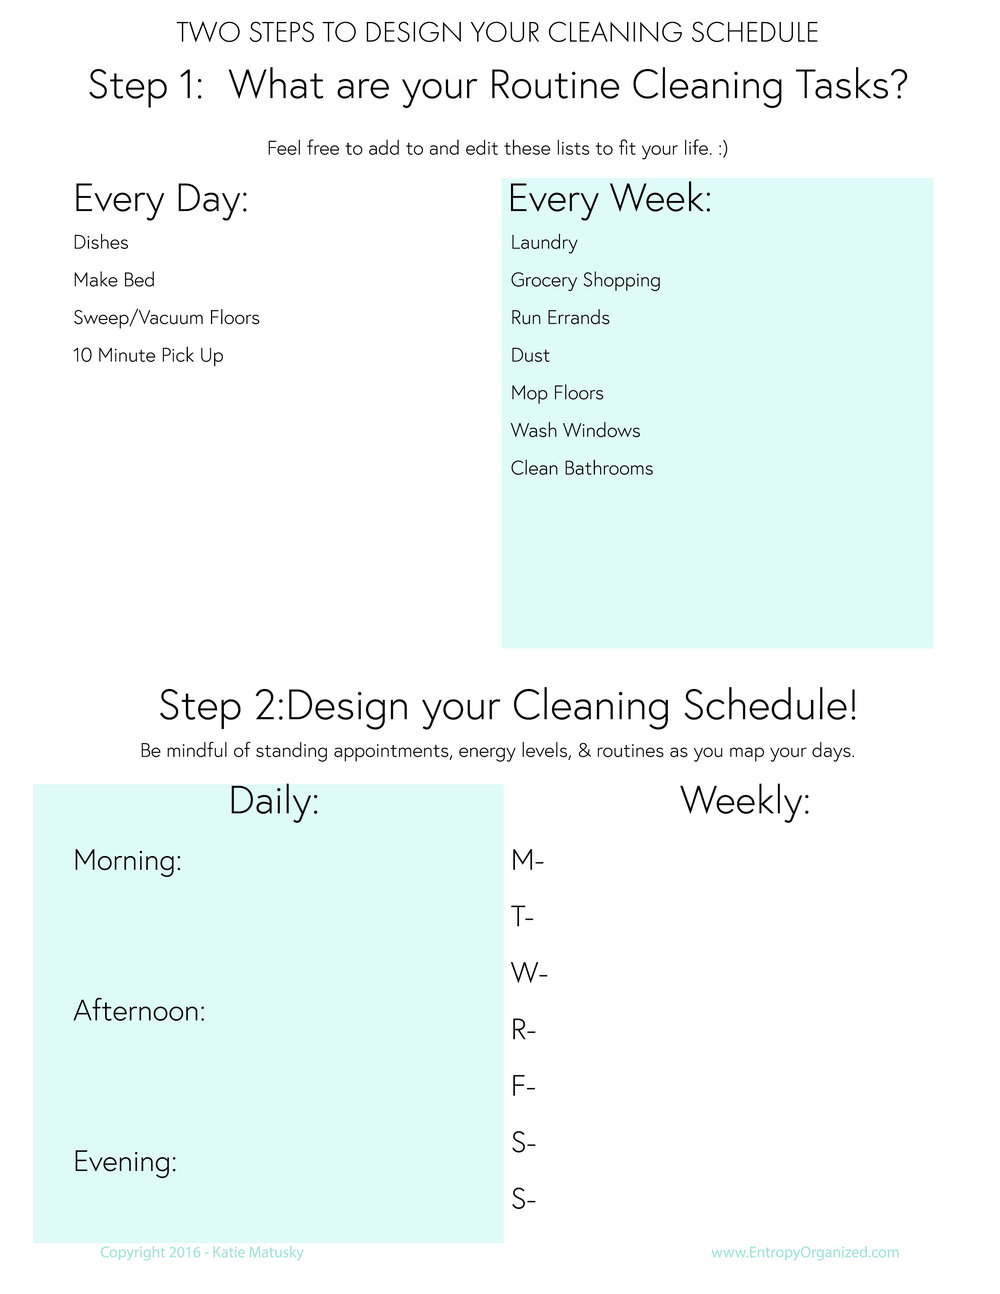 Design Your Cleaning Schedule.jpg